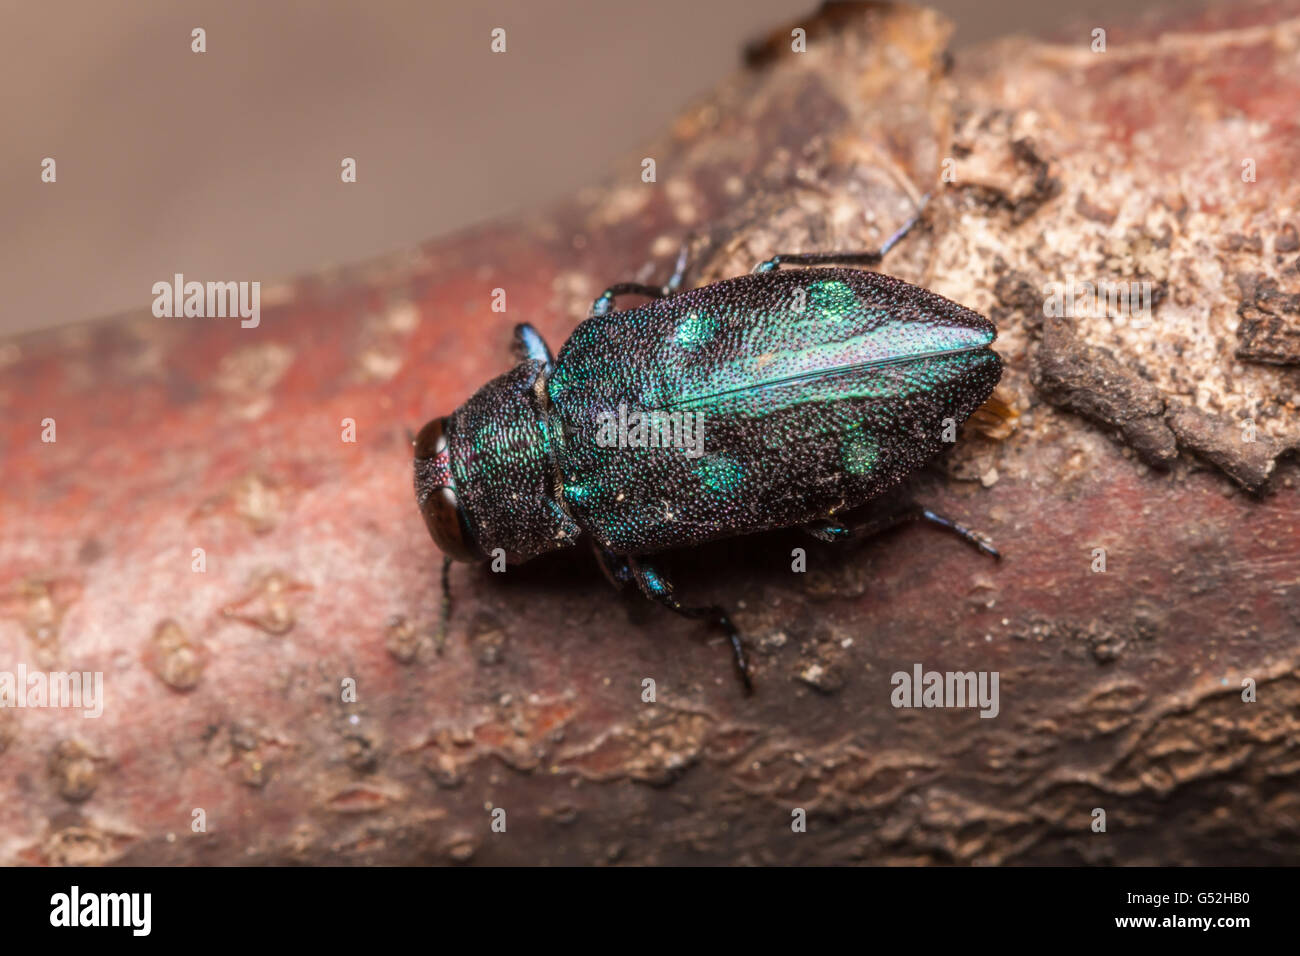 A Metallic Wood-boring Beetle (Chrysobothris azurea) explores a branch of a fallen oak tree. - Stock Image